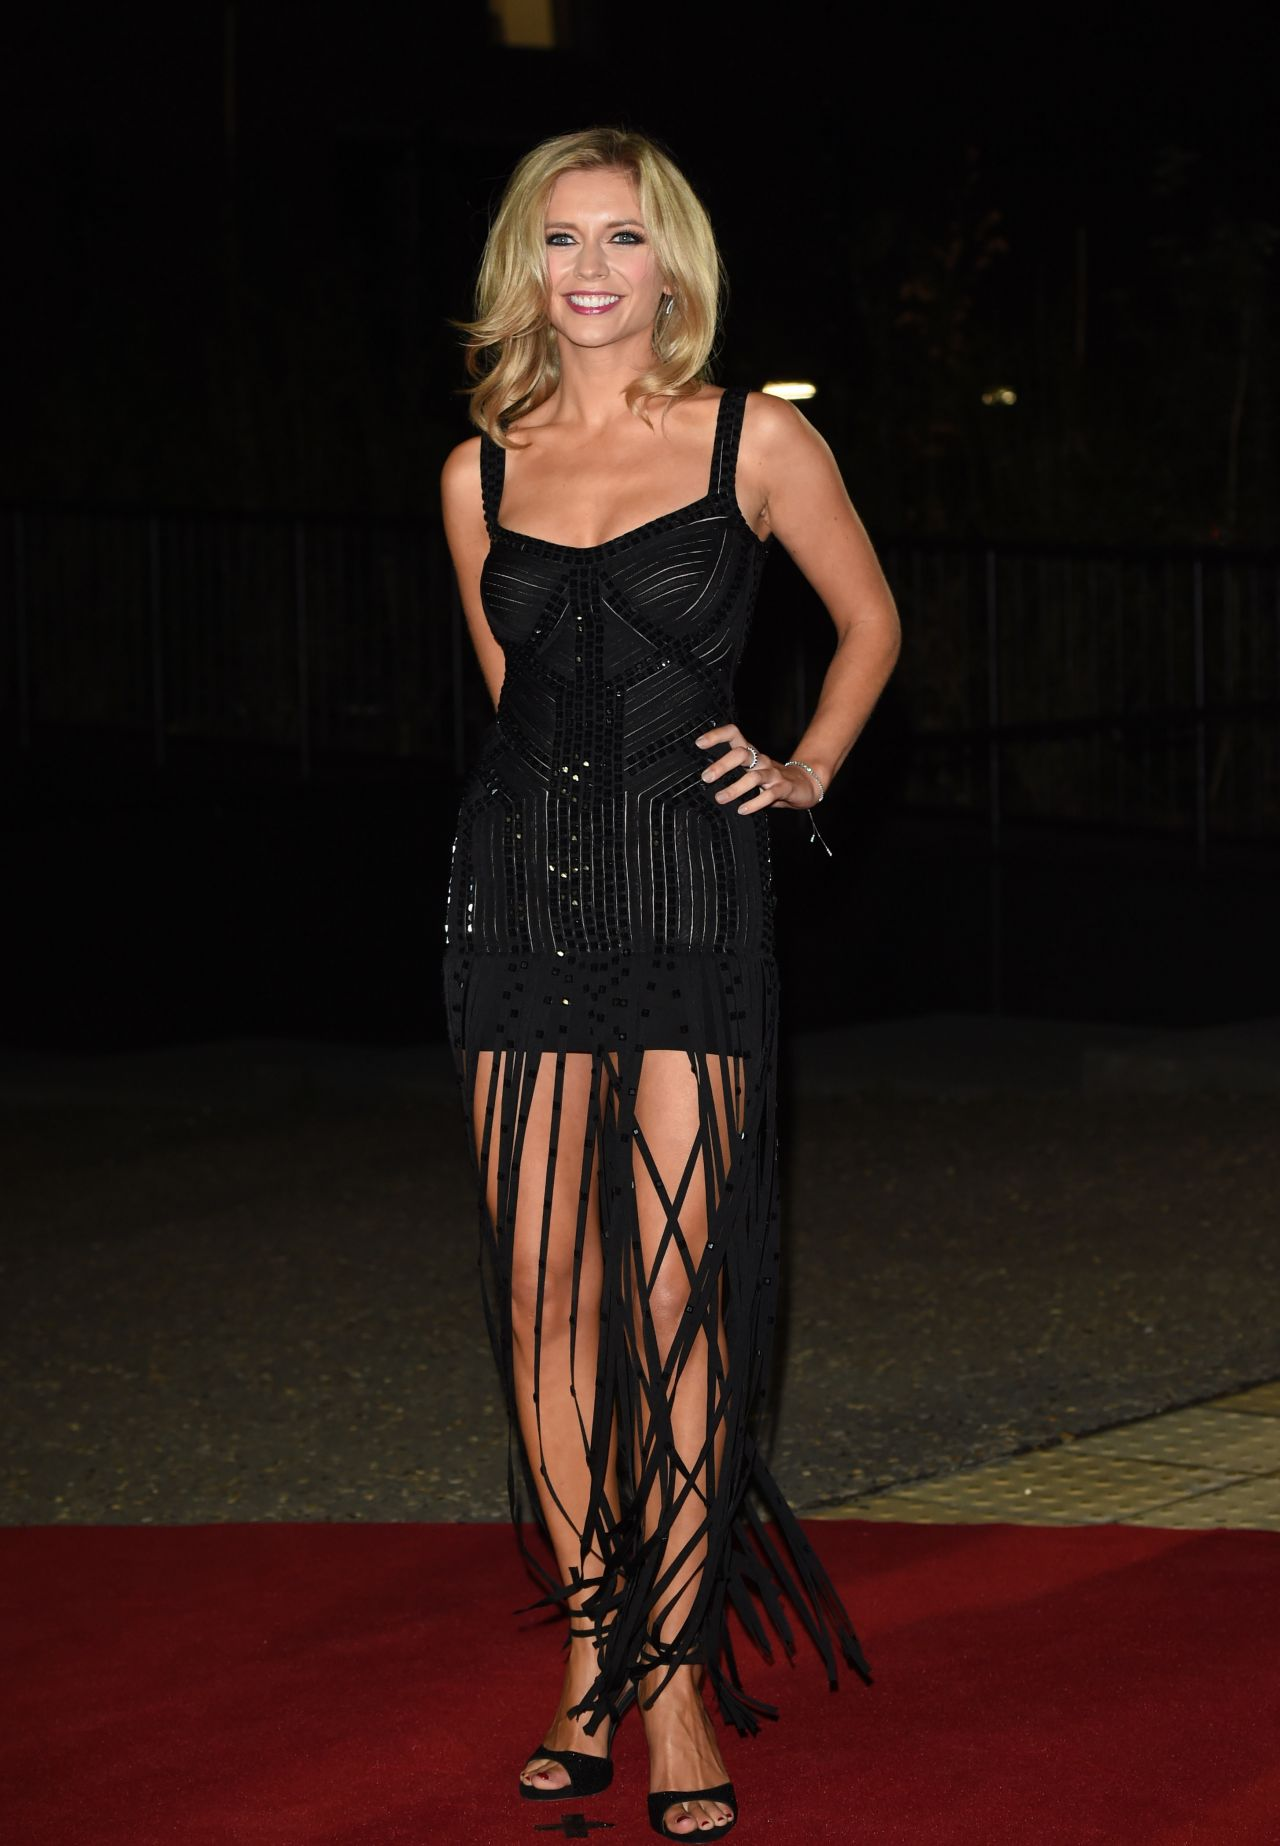 rachel riley - photo #39